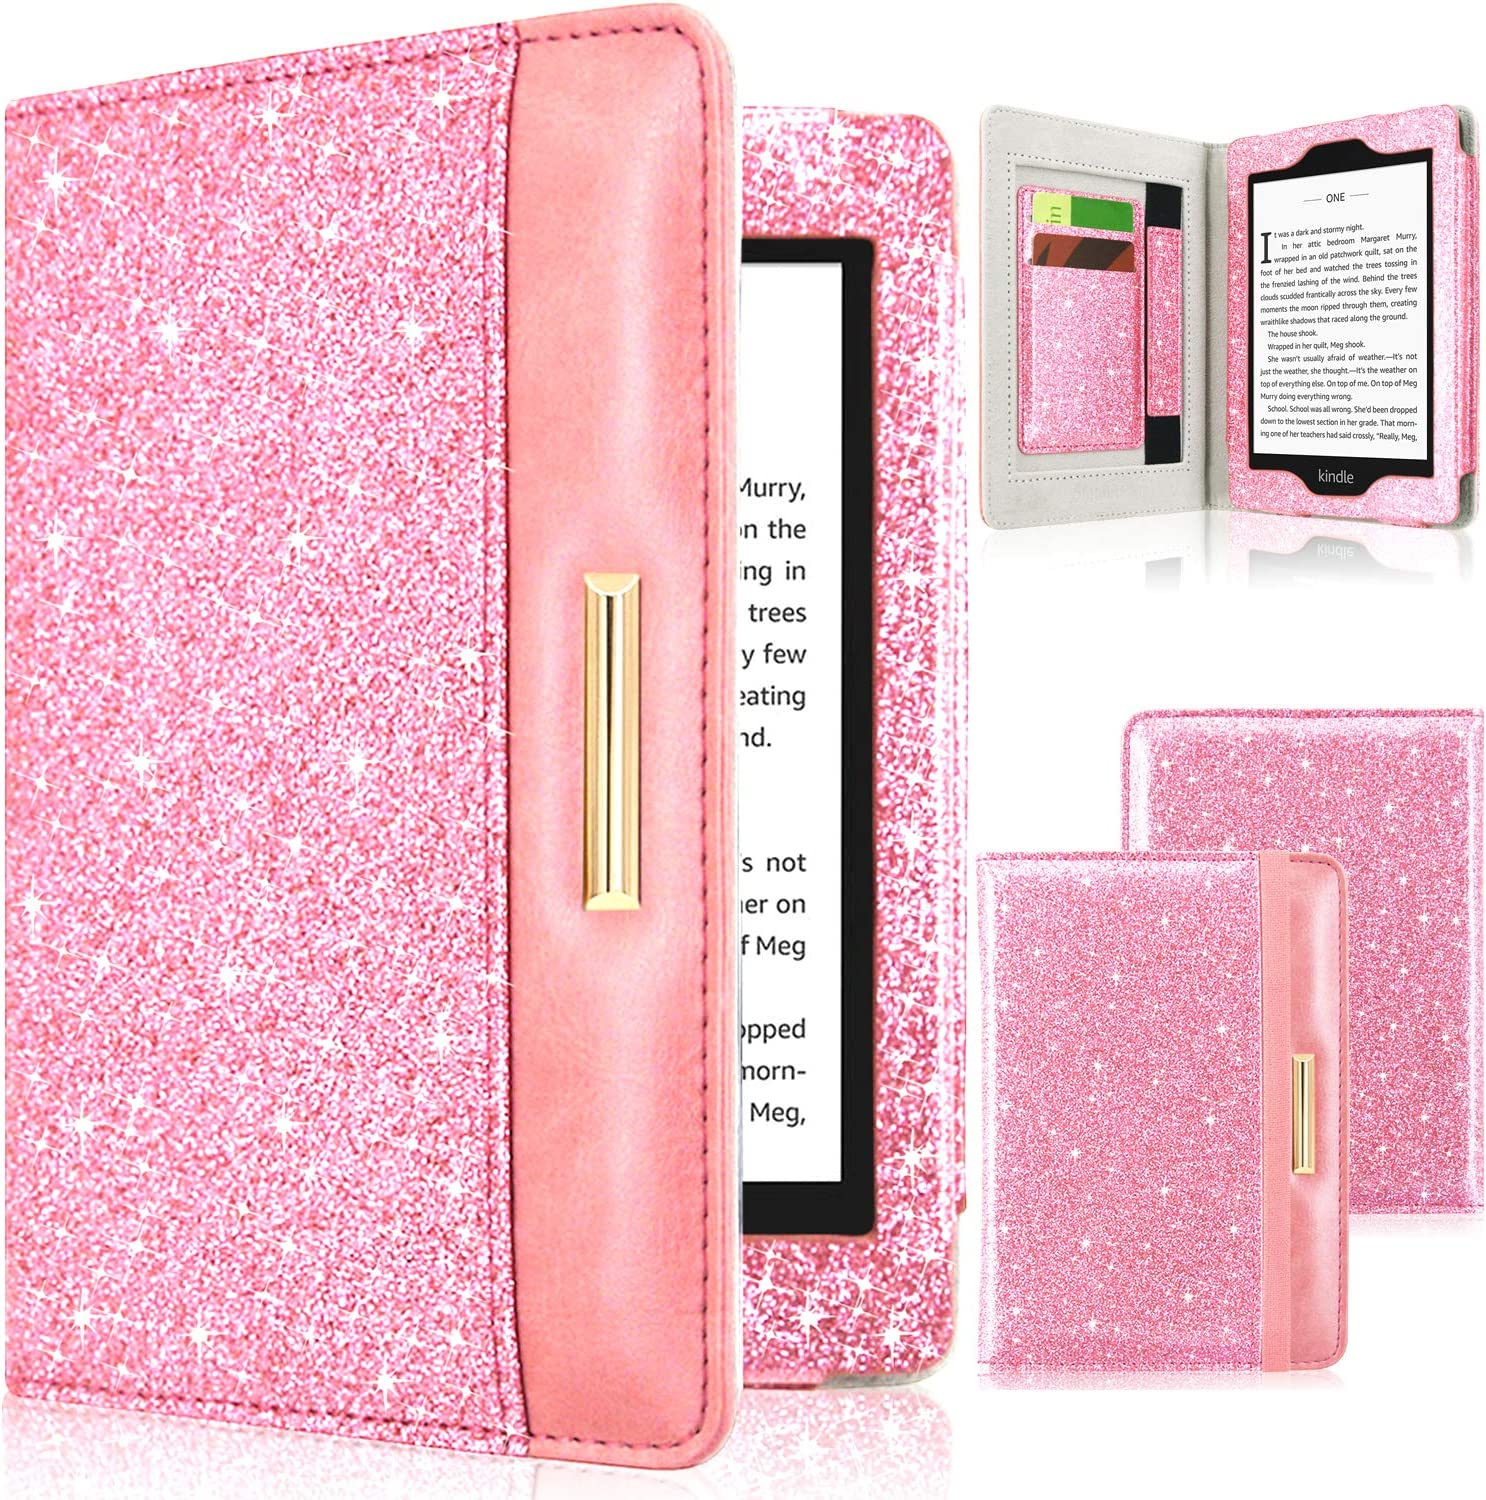 DMLuna Case for Kindle Paperwhite(Fits All-New 10th Generation 2018 / All Paperwhite Generations), Folio Premium PU Leather Case Auto Wake Sleep Cover with Hand Strap and Card Slot, Glitter Pink